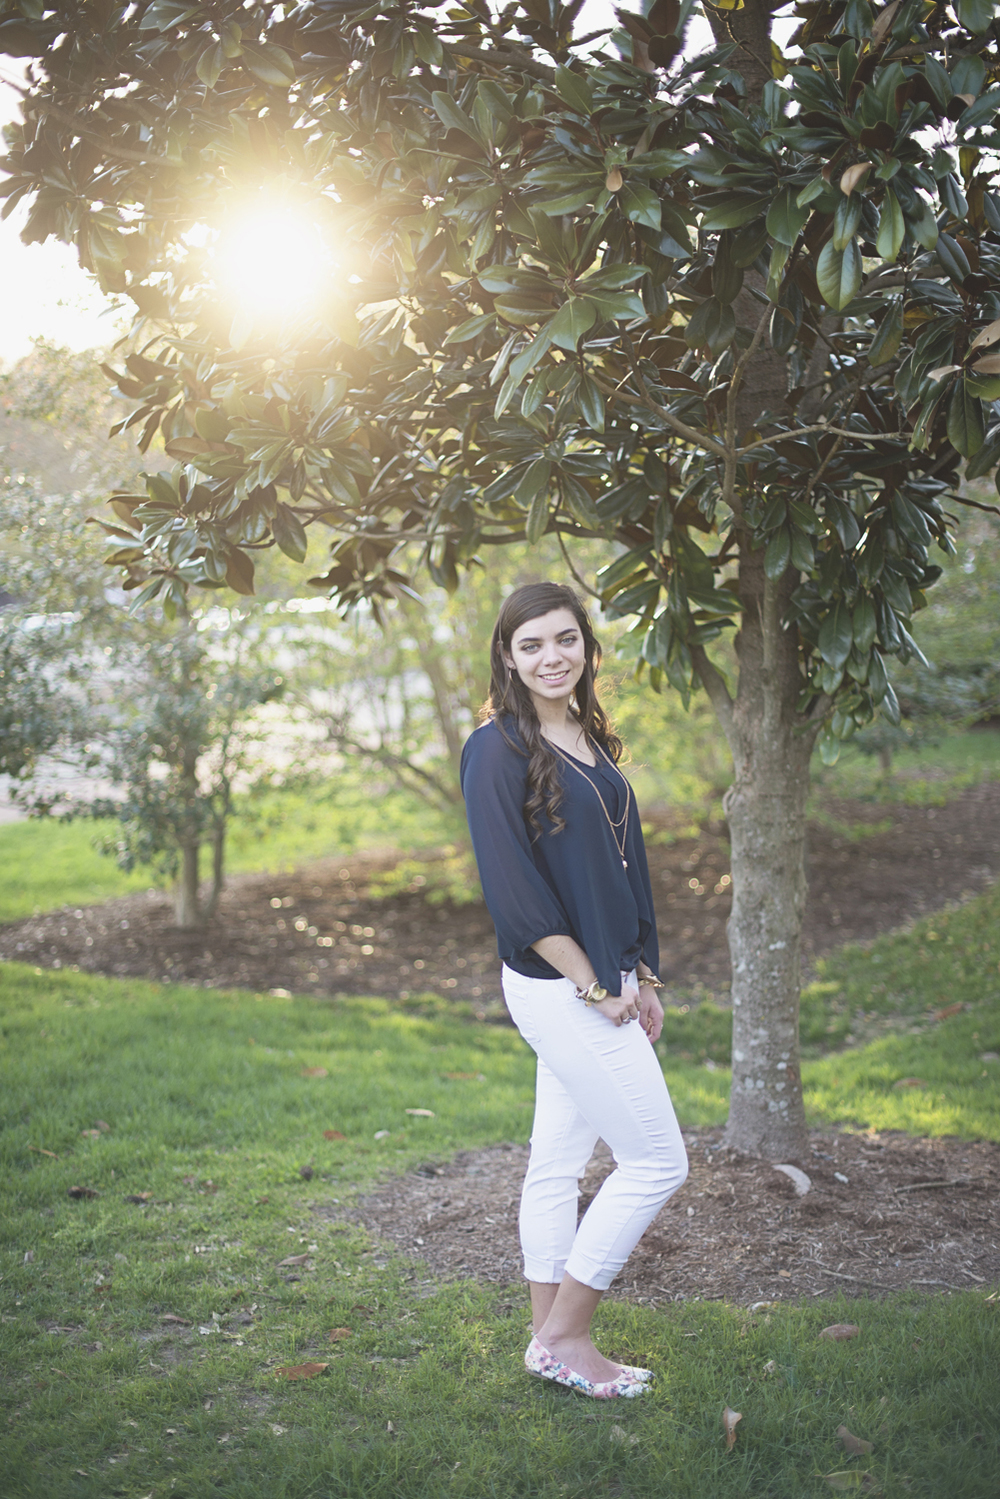 Spring senior picture outfit ideas | Williamsburg Senior Portraits